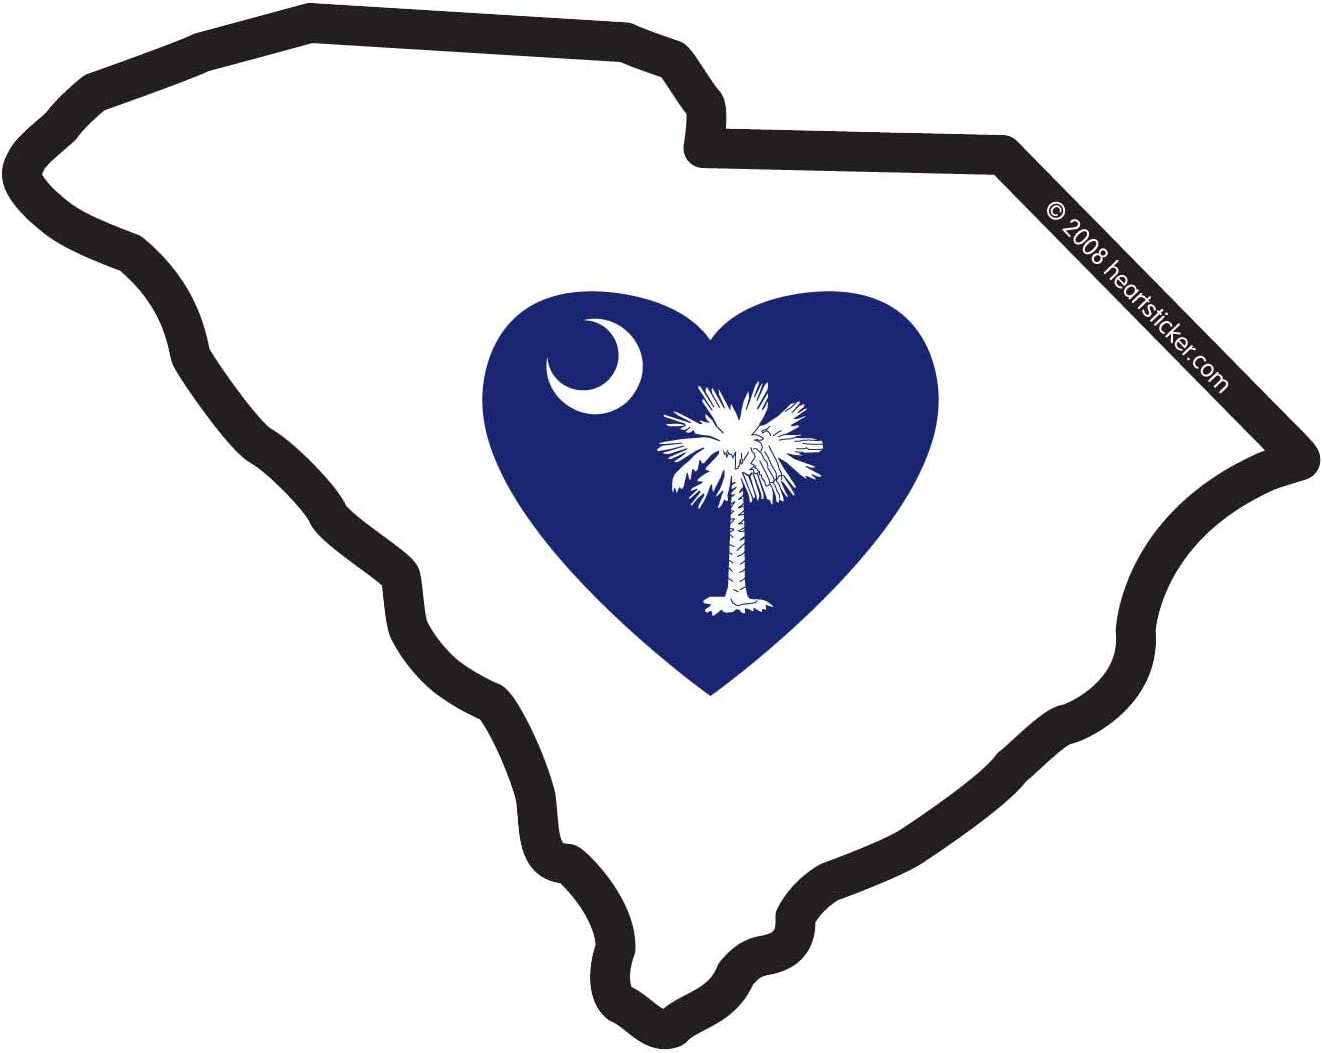 South Carolina Sticker Sc State Shaped Decal Blue Flag Heart Crescent Moon Palm Tree Apply To Water Bottle Laptop Cooler Car Truck Bumper Tumbler 803